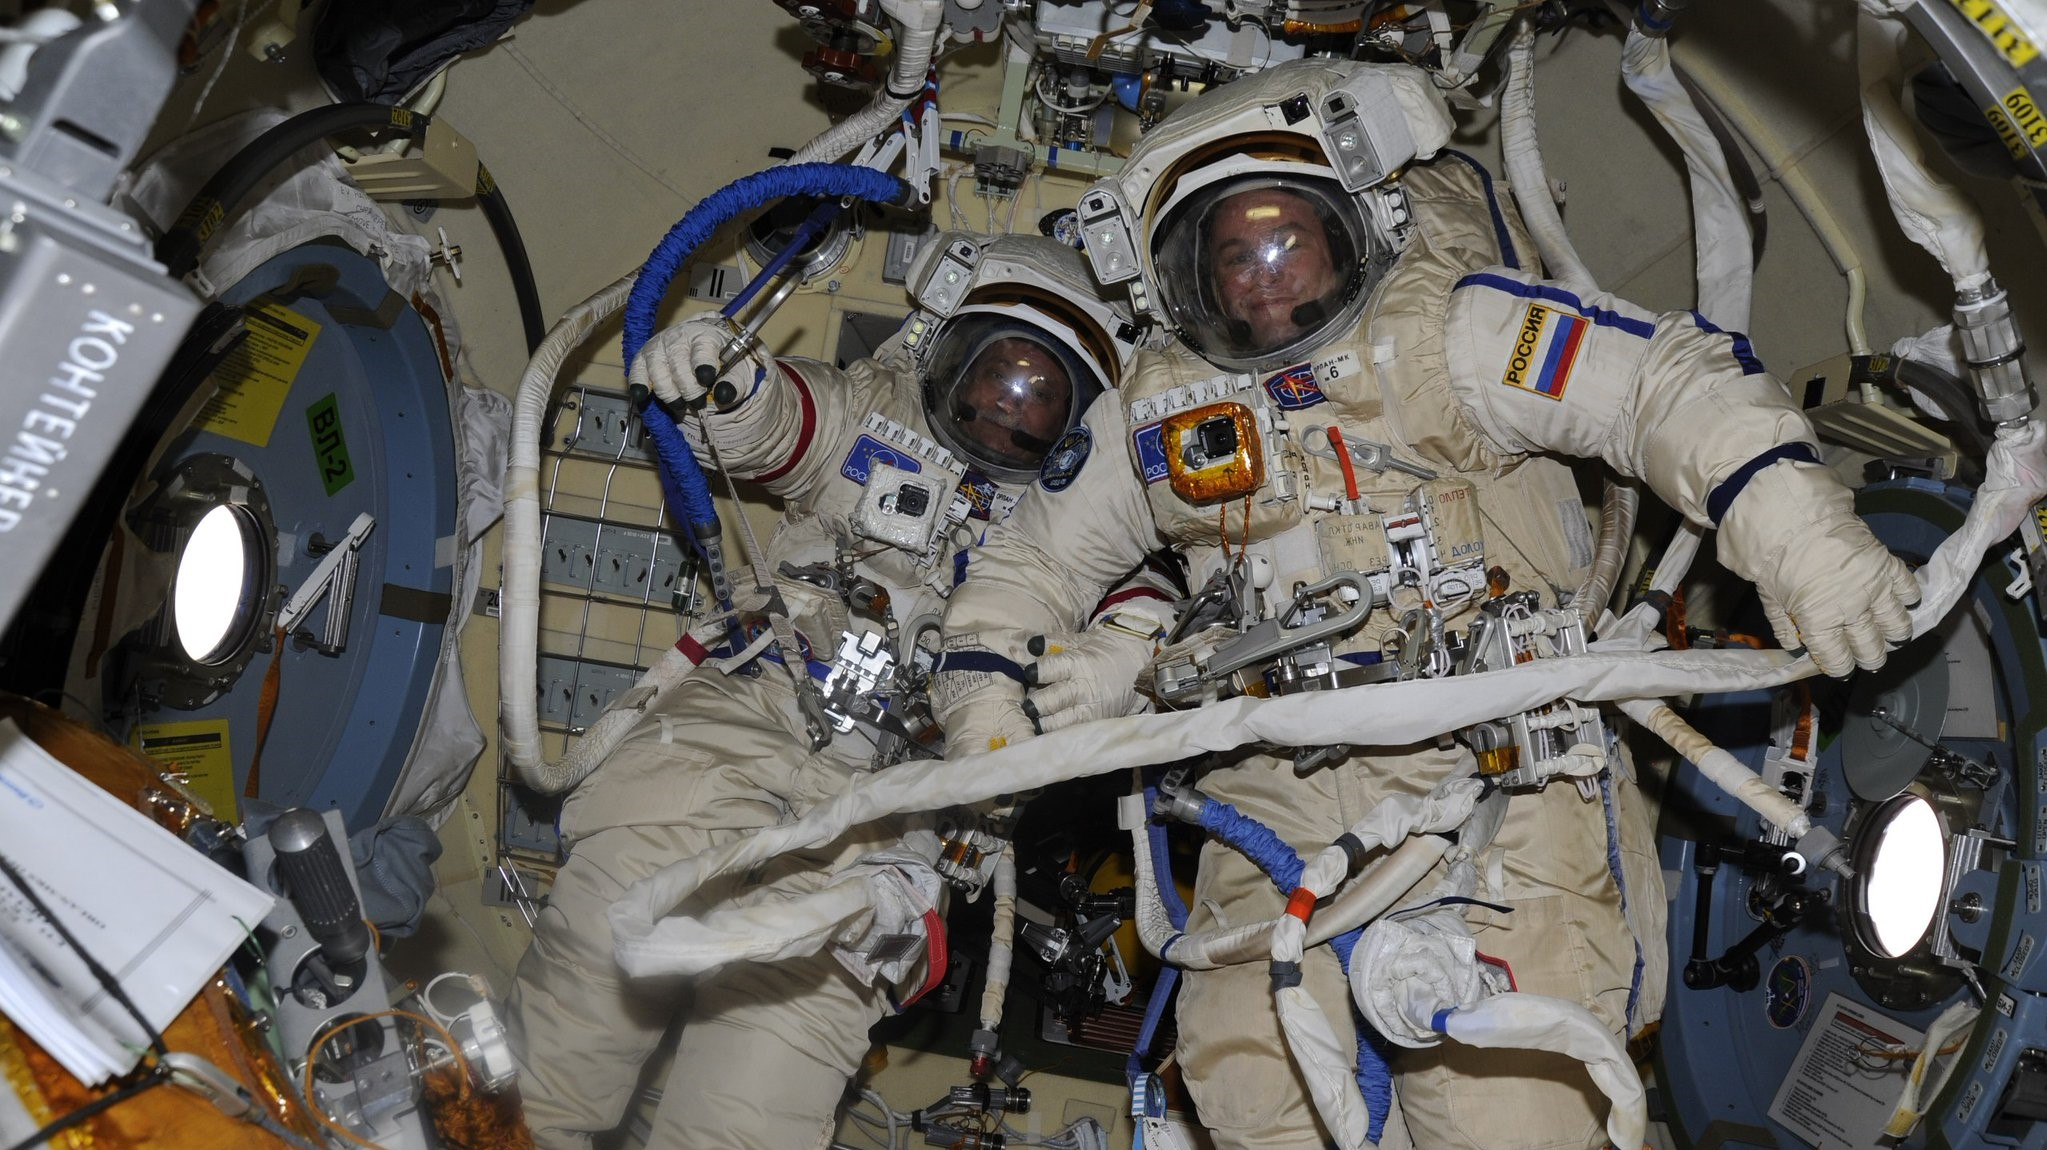 Expedition 52 Commander Fyodor Yurchikhin, left, and Flight Engineer Sergey Ryazanskiy in their  Orlan  spacesuits before their spacewalk. Photo Credit: Roscosmos